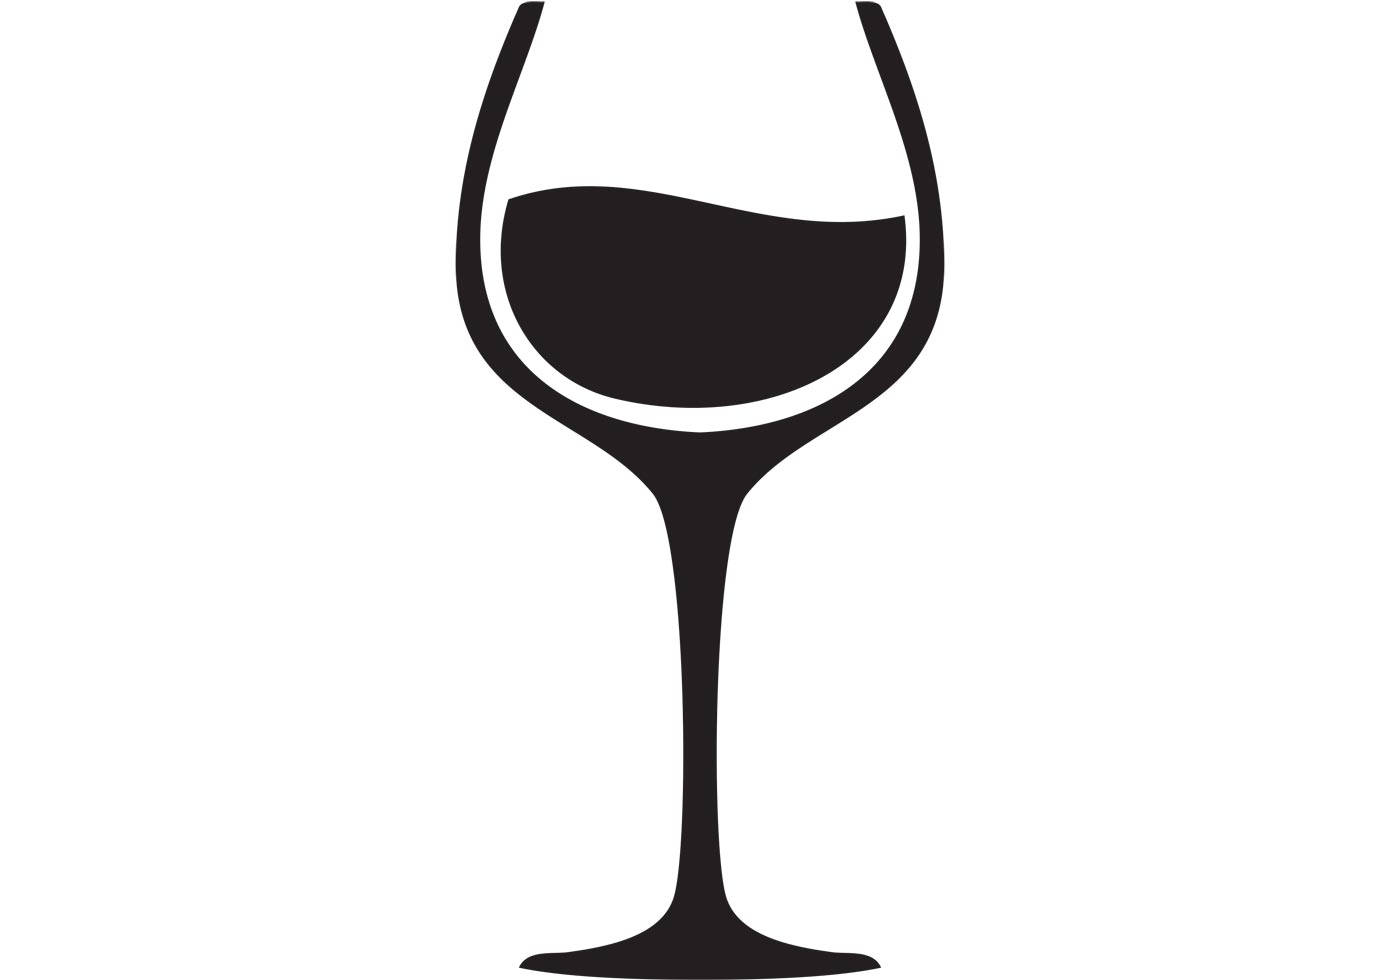 hight resolution of 1400x980 black clipart wine glass